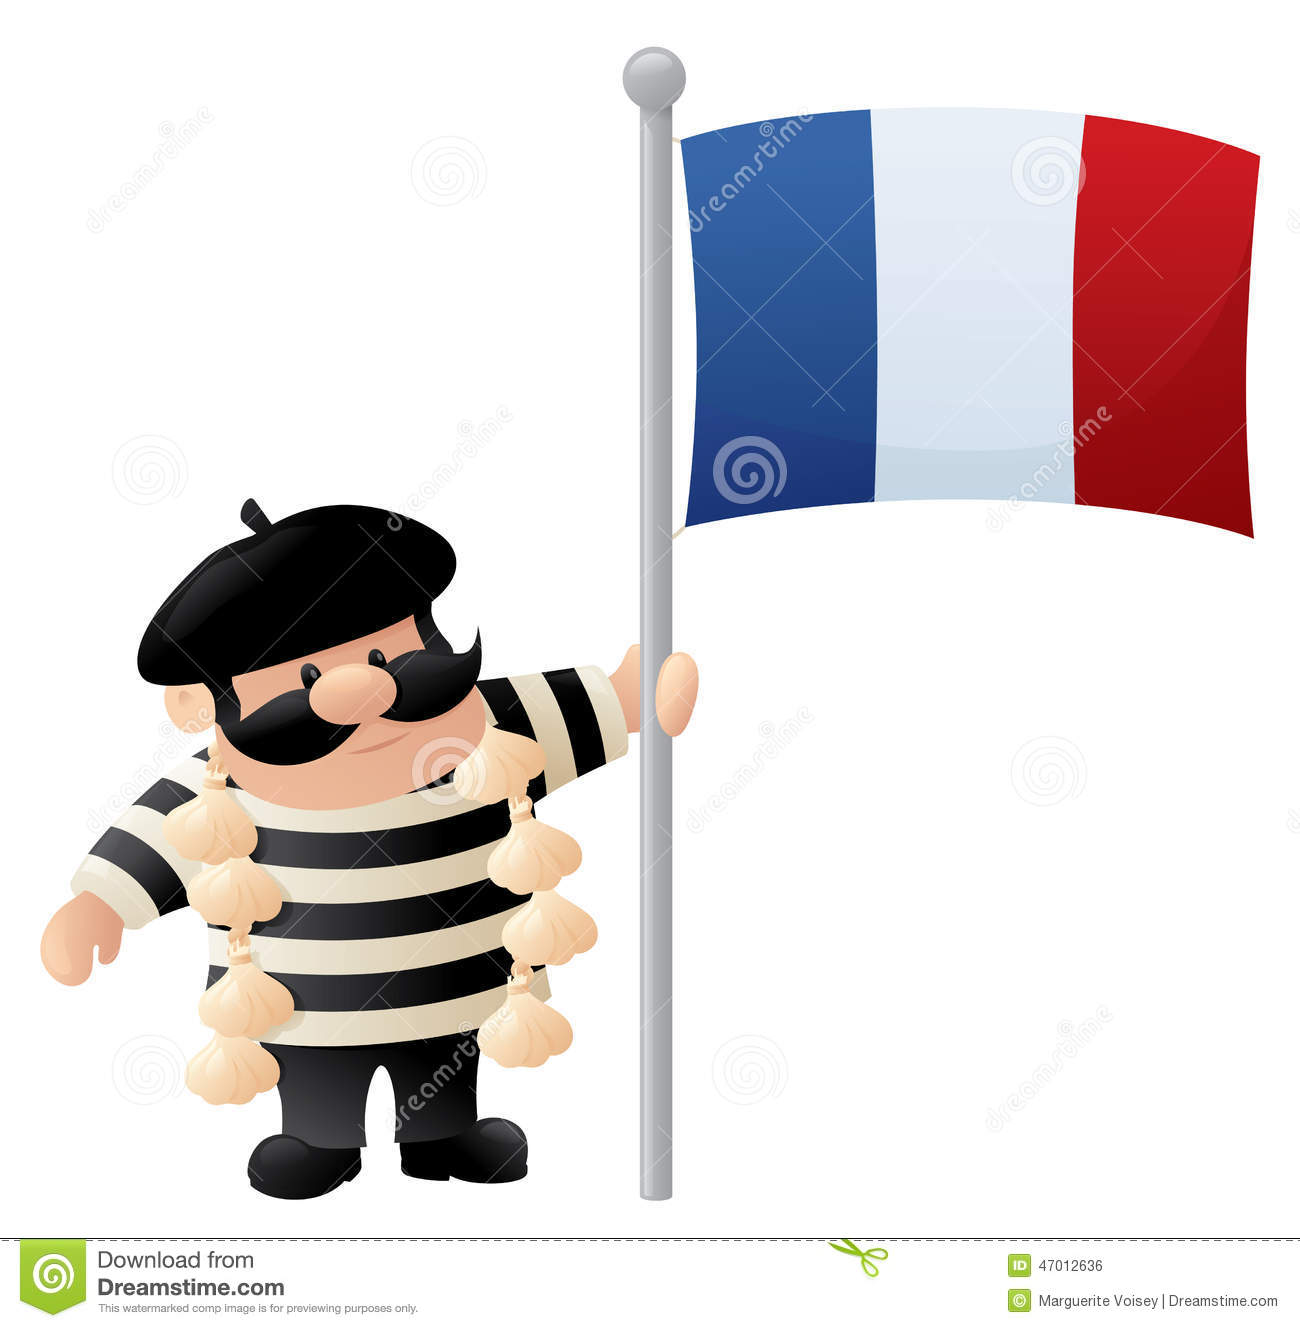 stereotype clipart clipart panda free clipart images france flag clipart french flag clip art large